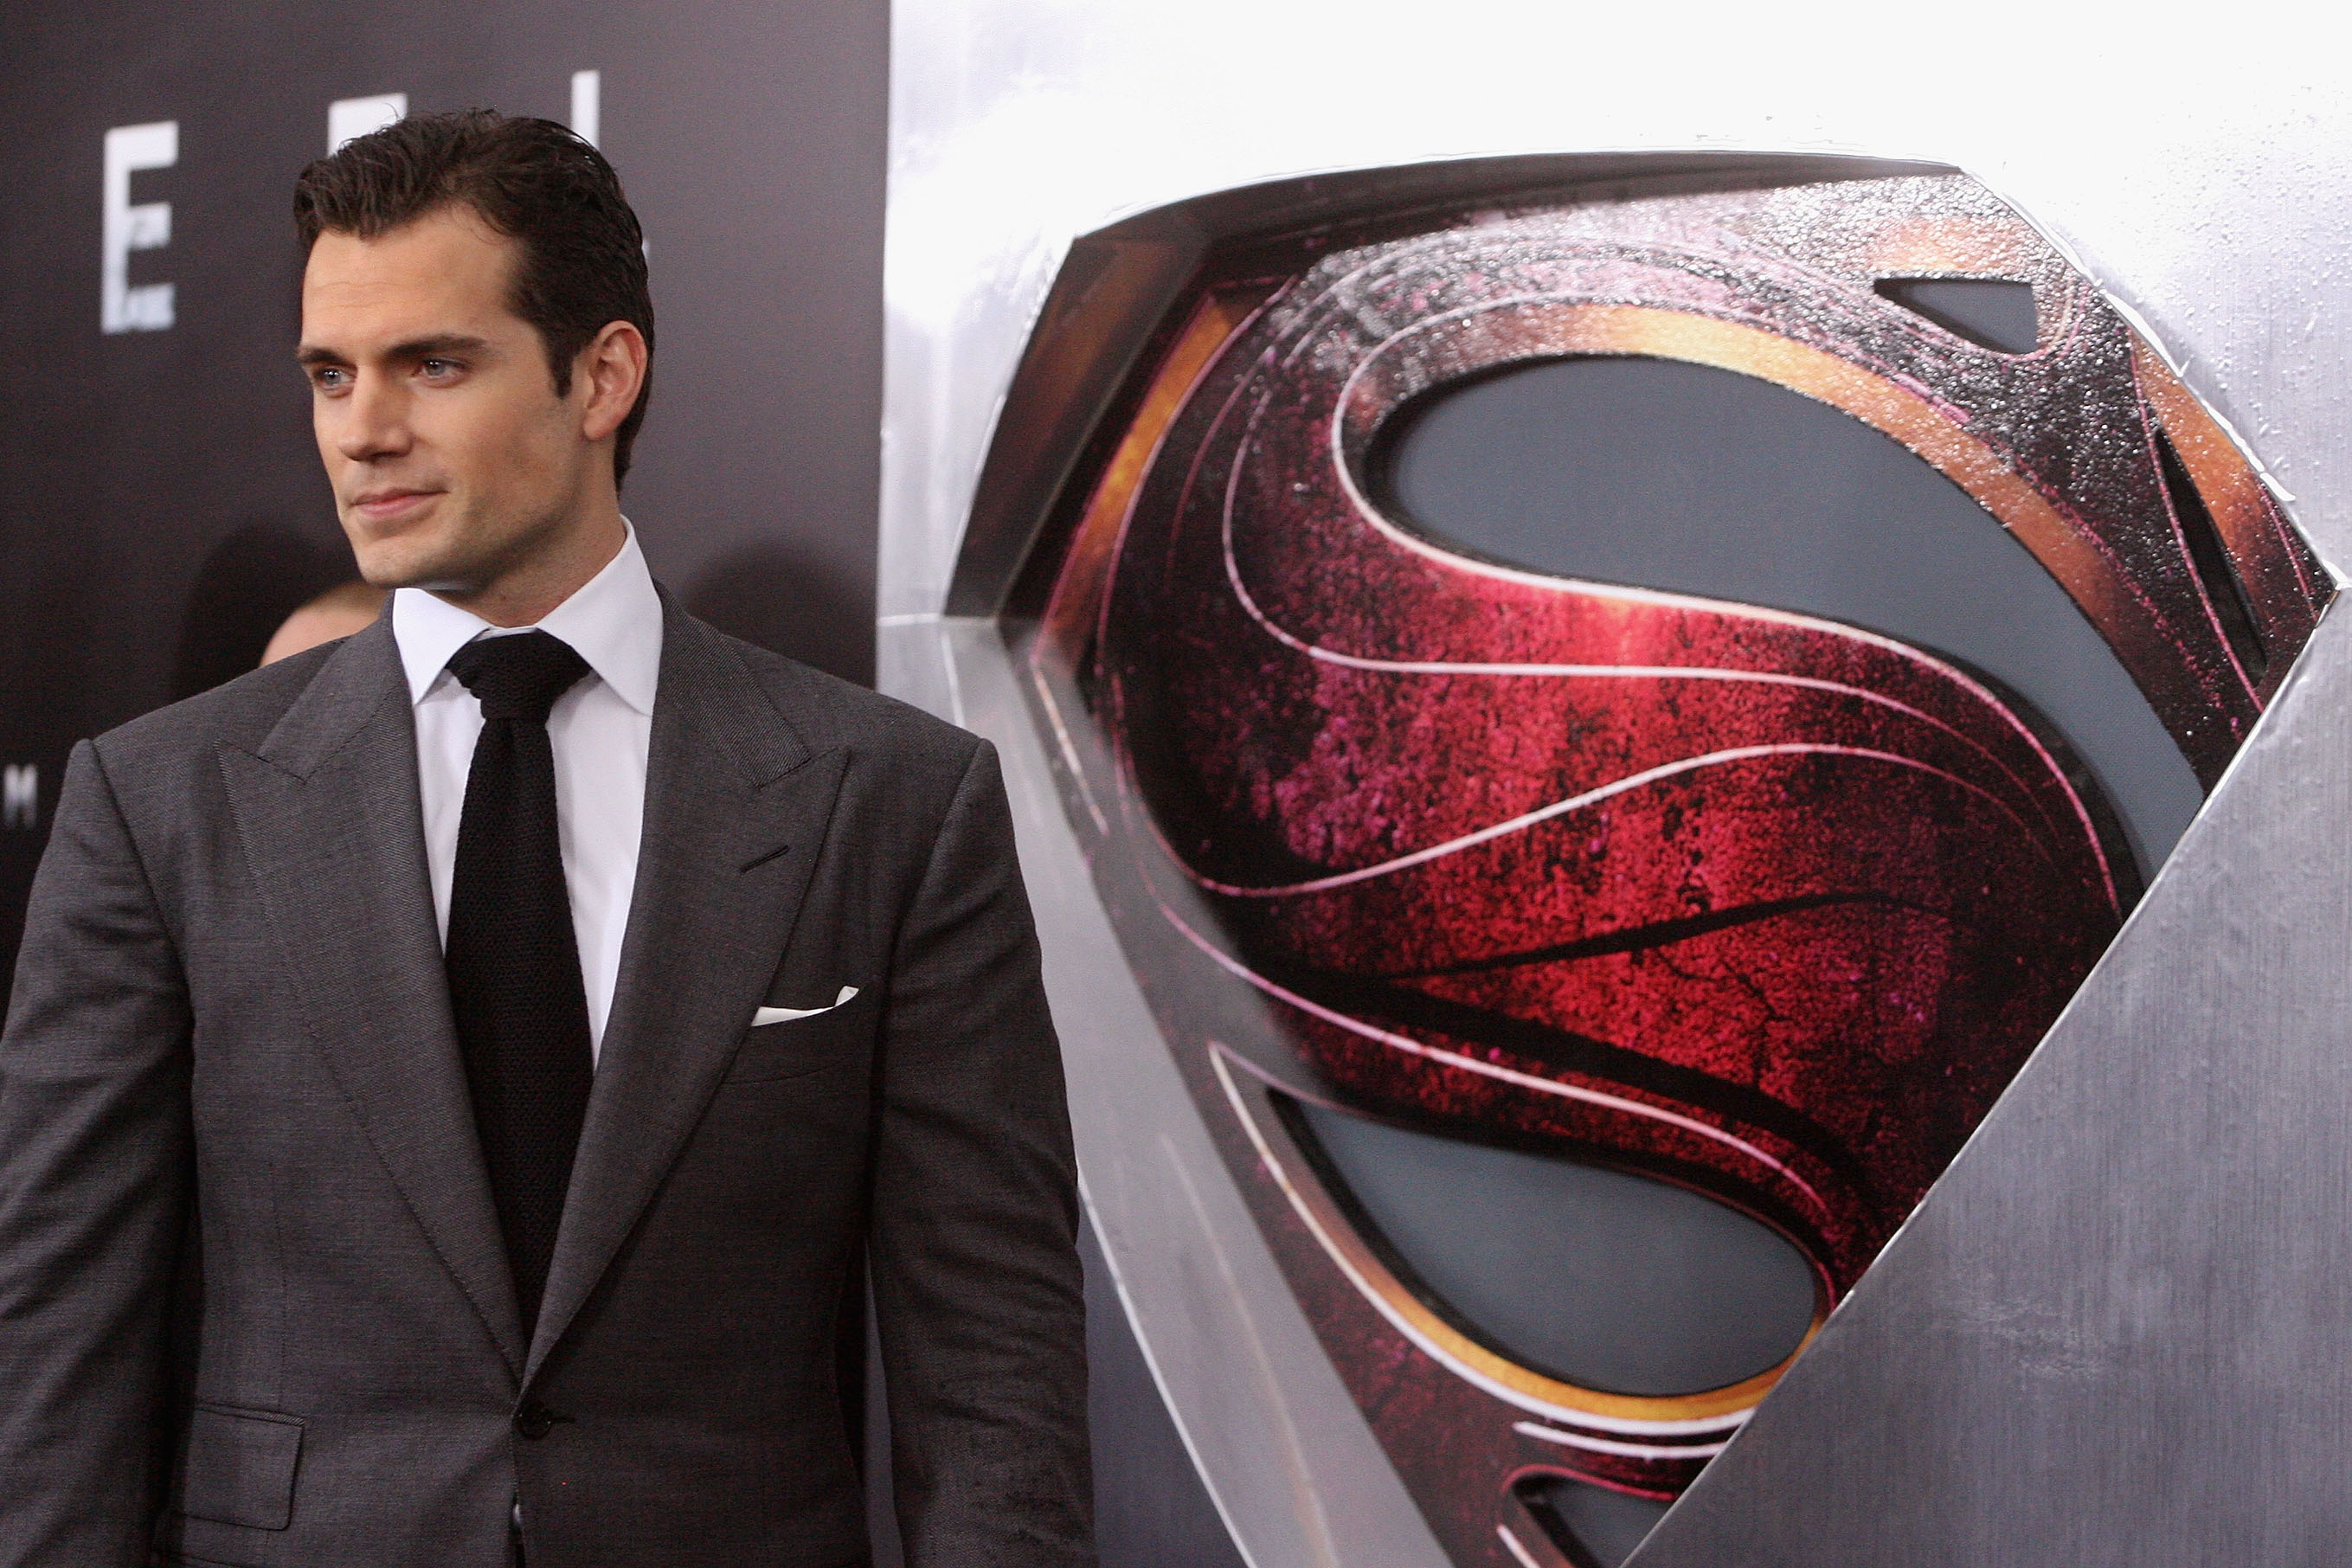 Henry Cavill attends the  Man Of Steel  (2013) World Premiere in New York City.